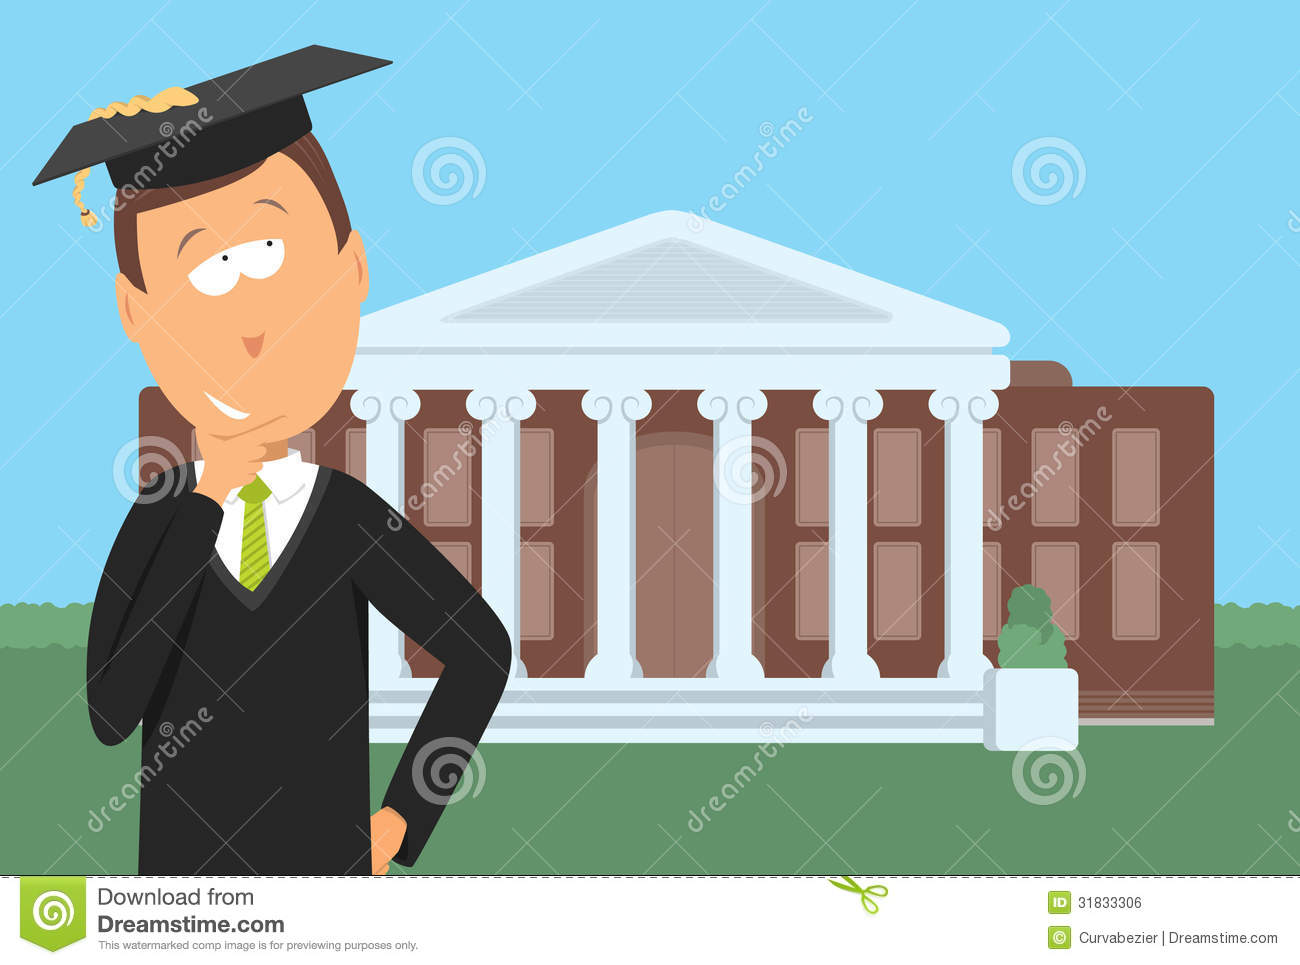 college-graduate-thinking-cartoon-illustration-university-considering-options-31833306.jpg